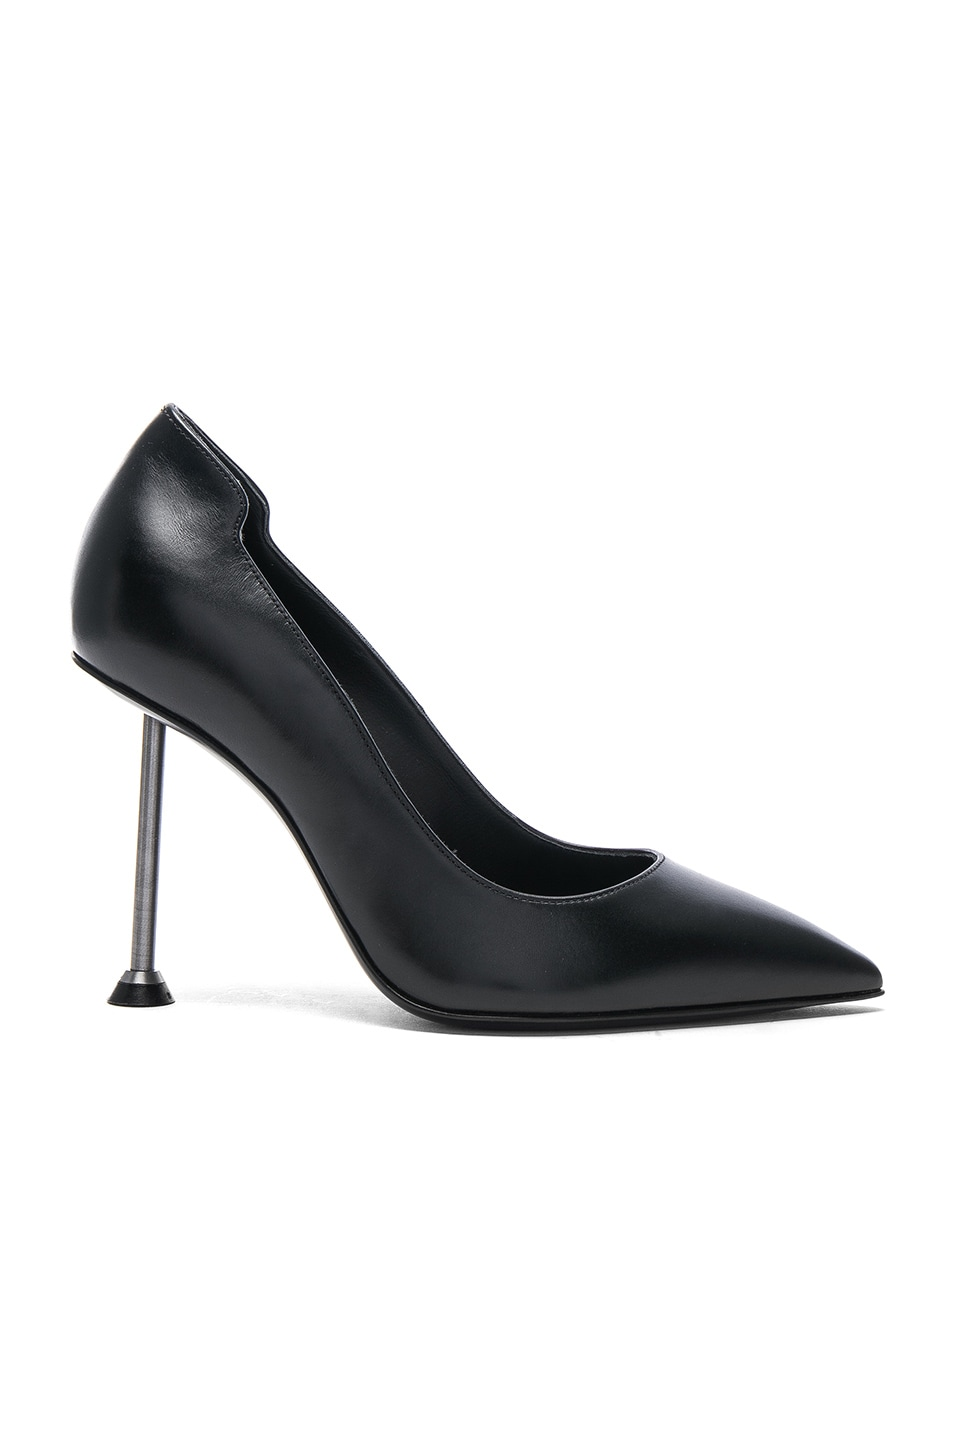 VICTORIA BECKHAM SUEDE POINTY PUMPS IN BLACK